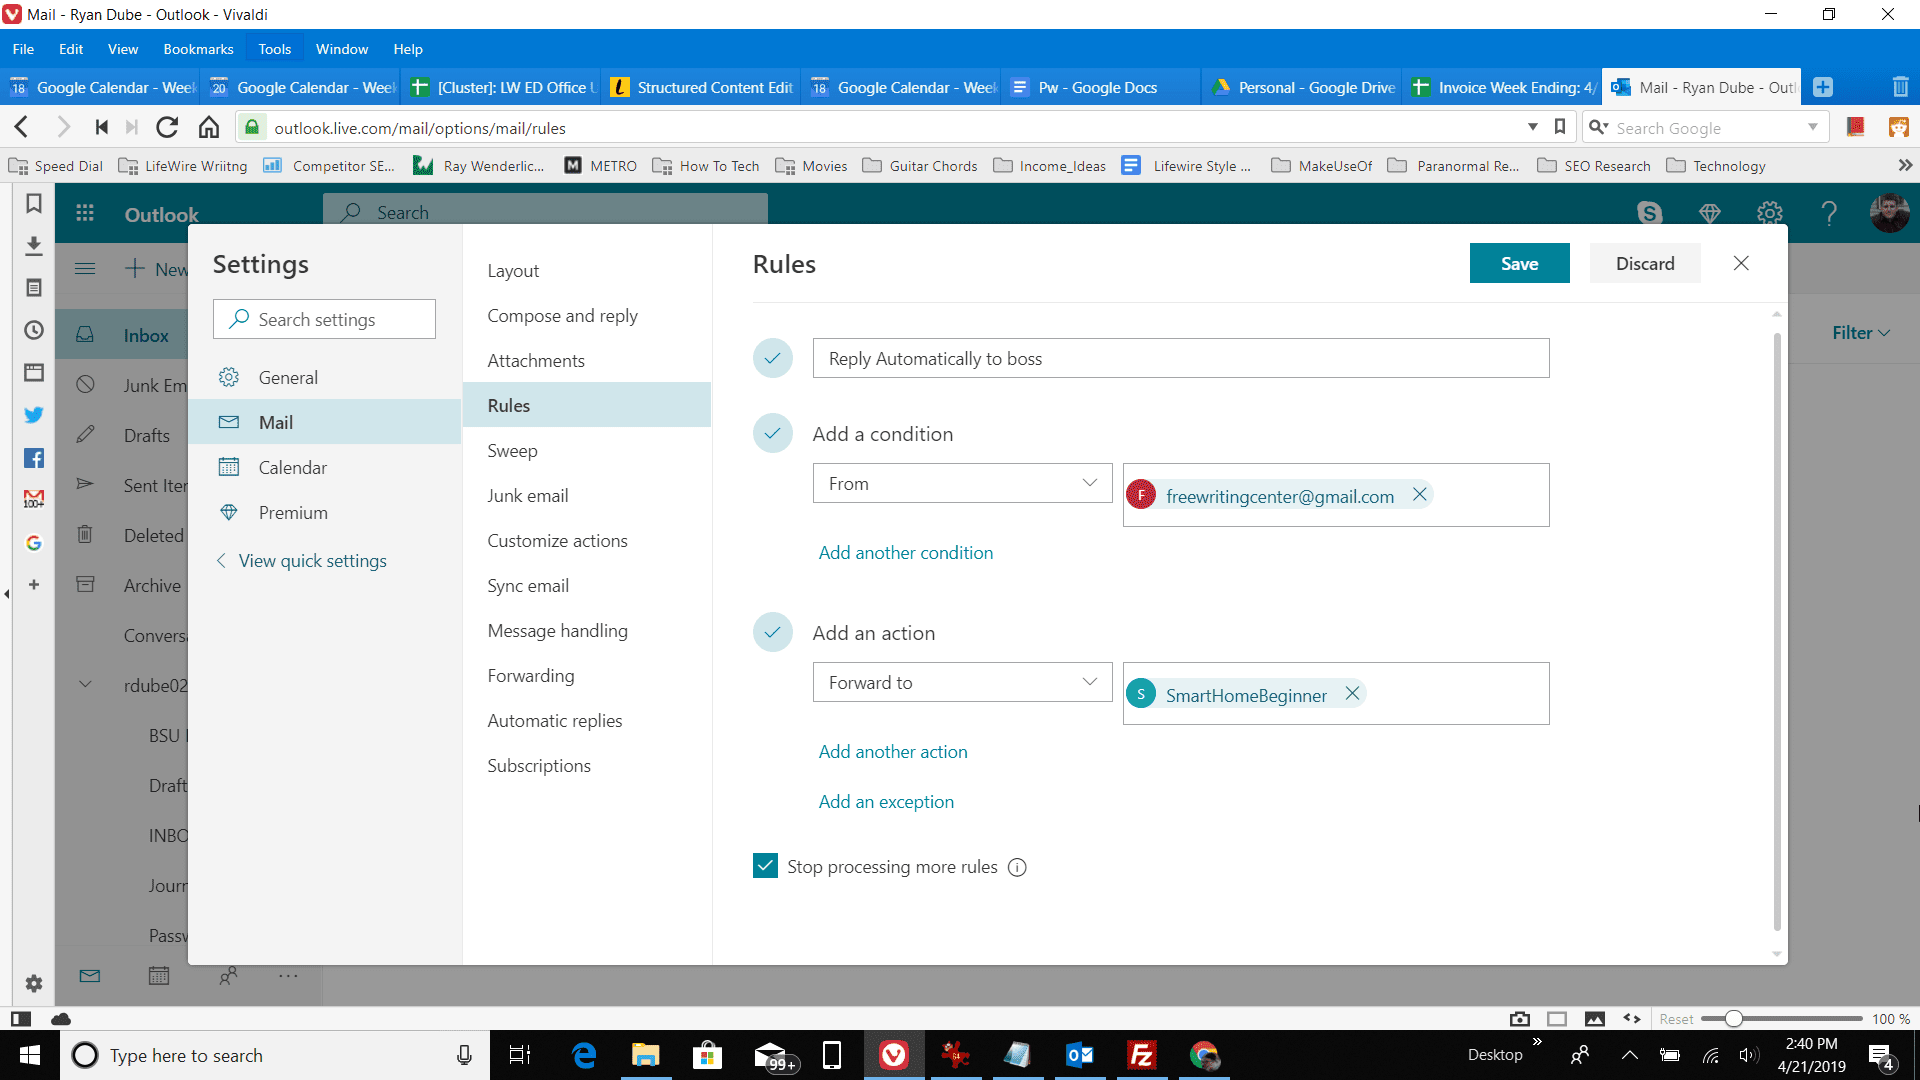 Screenshot of adding an action in Outlook online